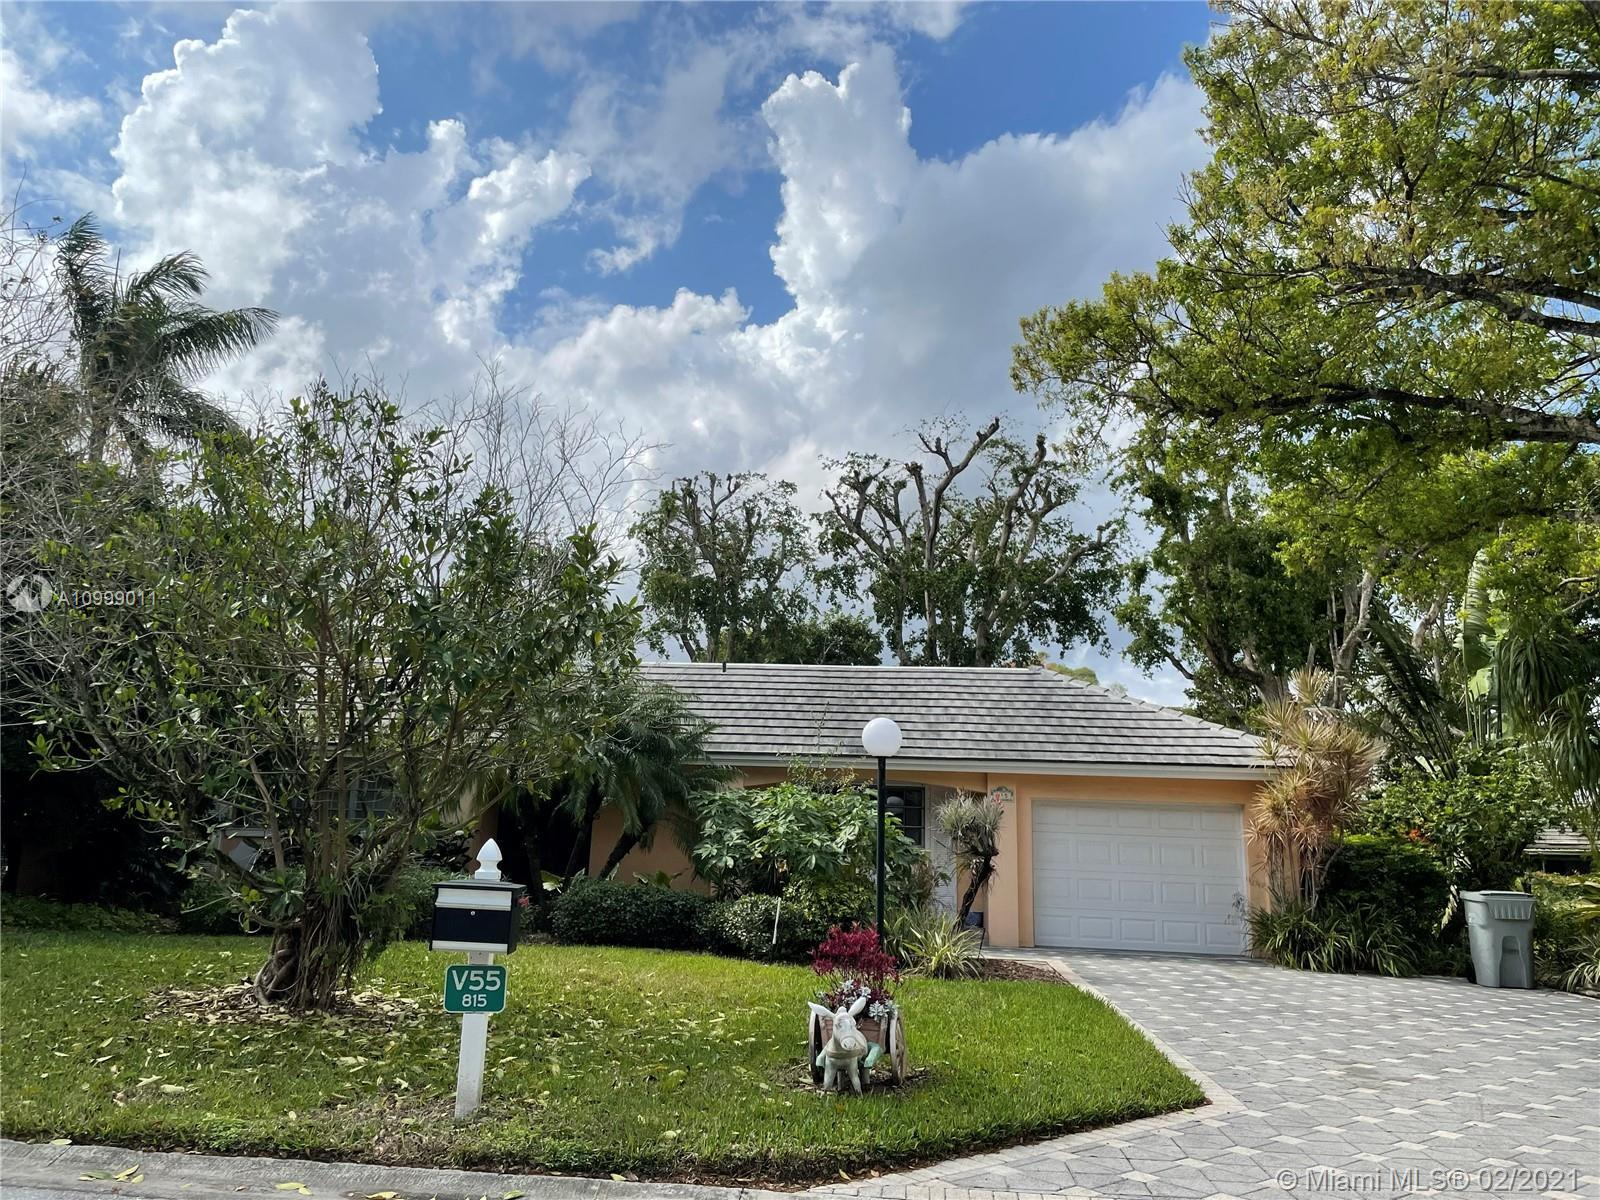 Beautiful Villa in Palm Aire Country Club. 3 bedrooms and 3 bathrooms, update kitchen, one car garag